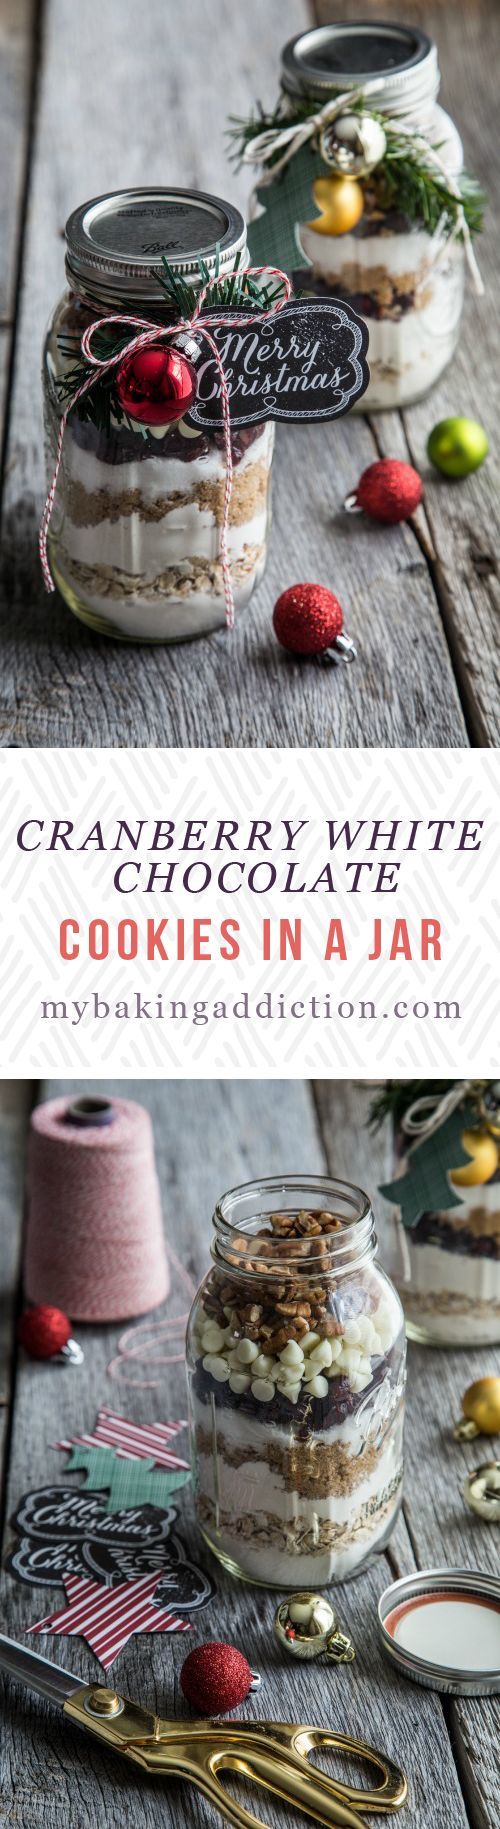 Cranberry White Chocolate Cookies in a Jar from My Baking Addiction